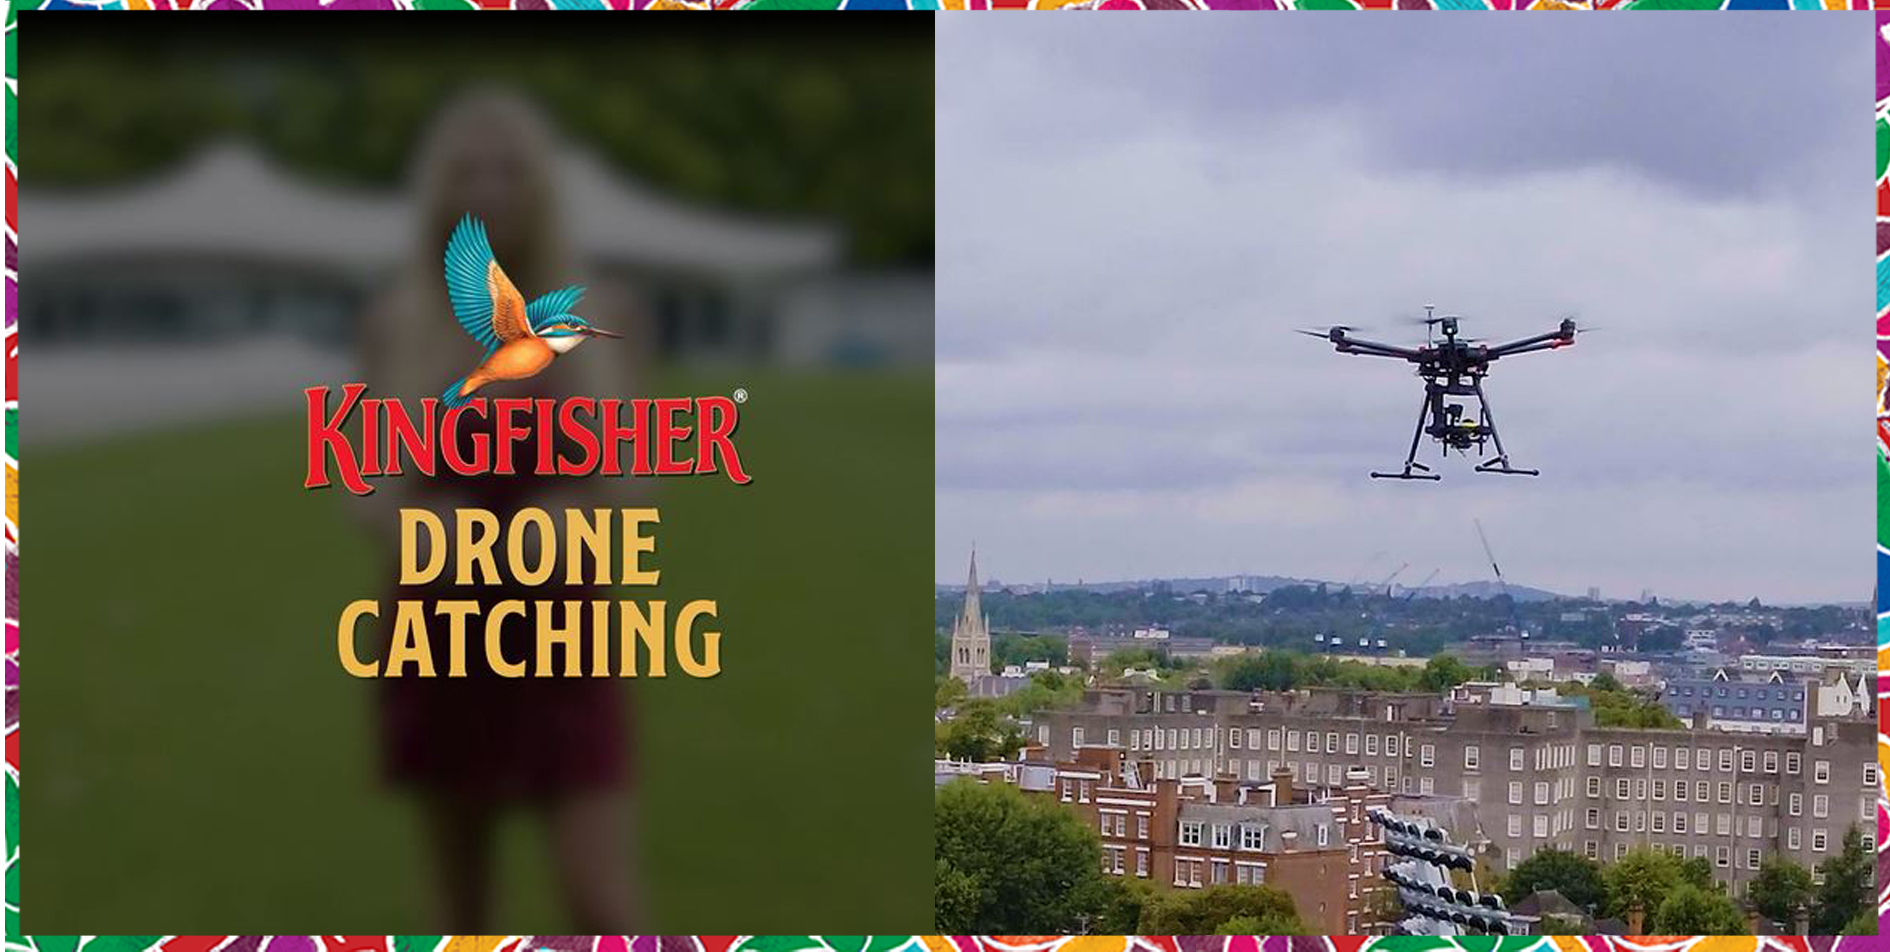 The Drone Catch World Record broken by Kingfisher Beer